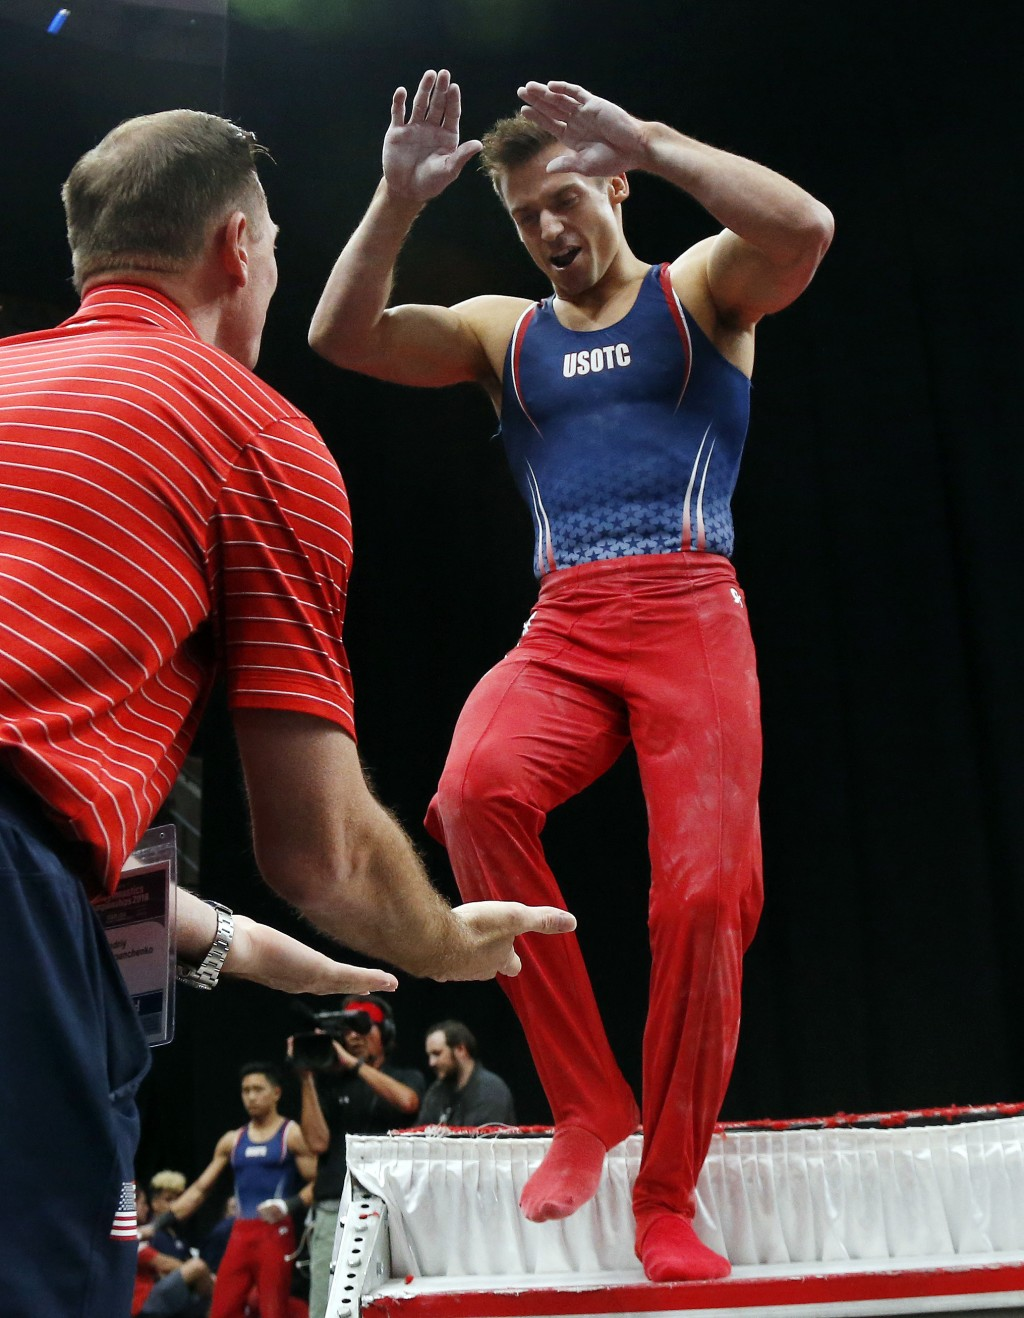 Sam Mikulak, right, celebrates after competing on the pommel horse at the U.S. Gymnastics Championships, Saturday, Aug. 18, 2018, in Boston. (AP Photo...